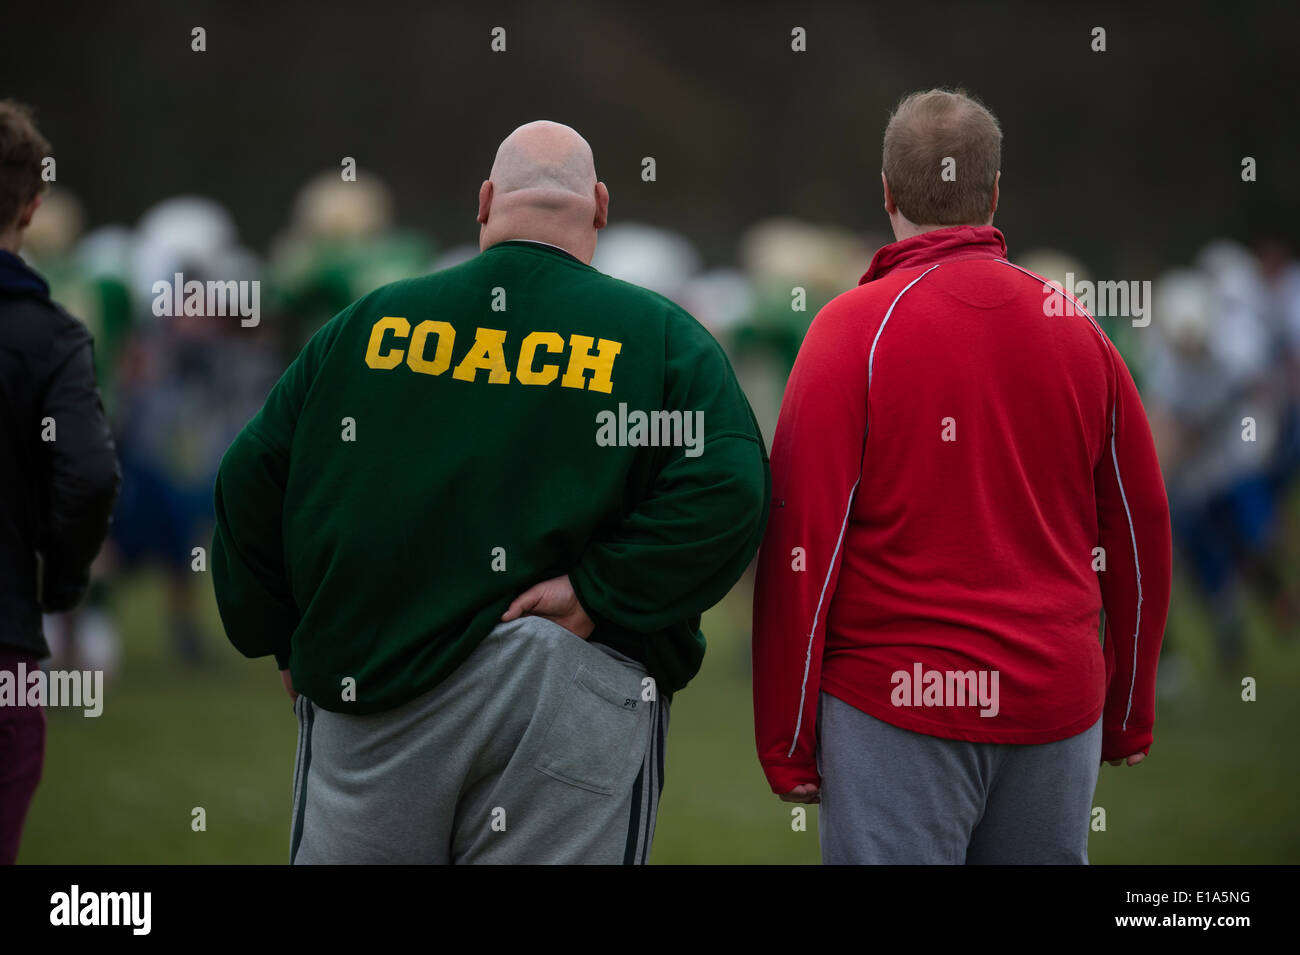 Rear View Of A Large Bald American Football Coach Uk Stock Photo